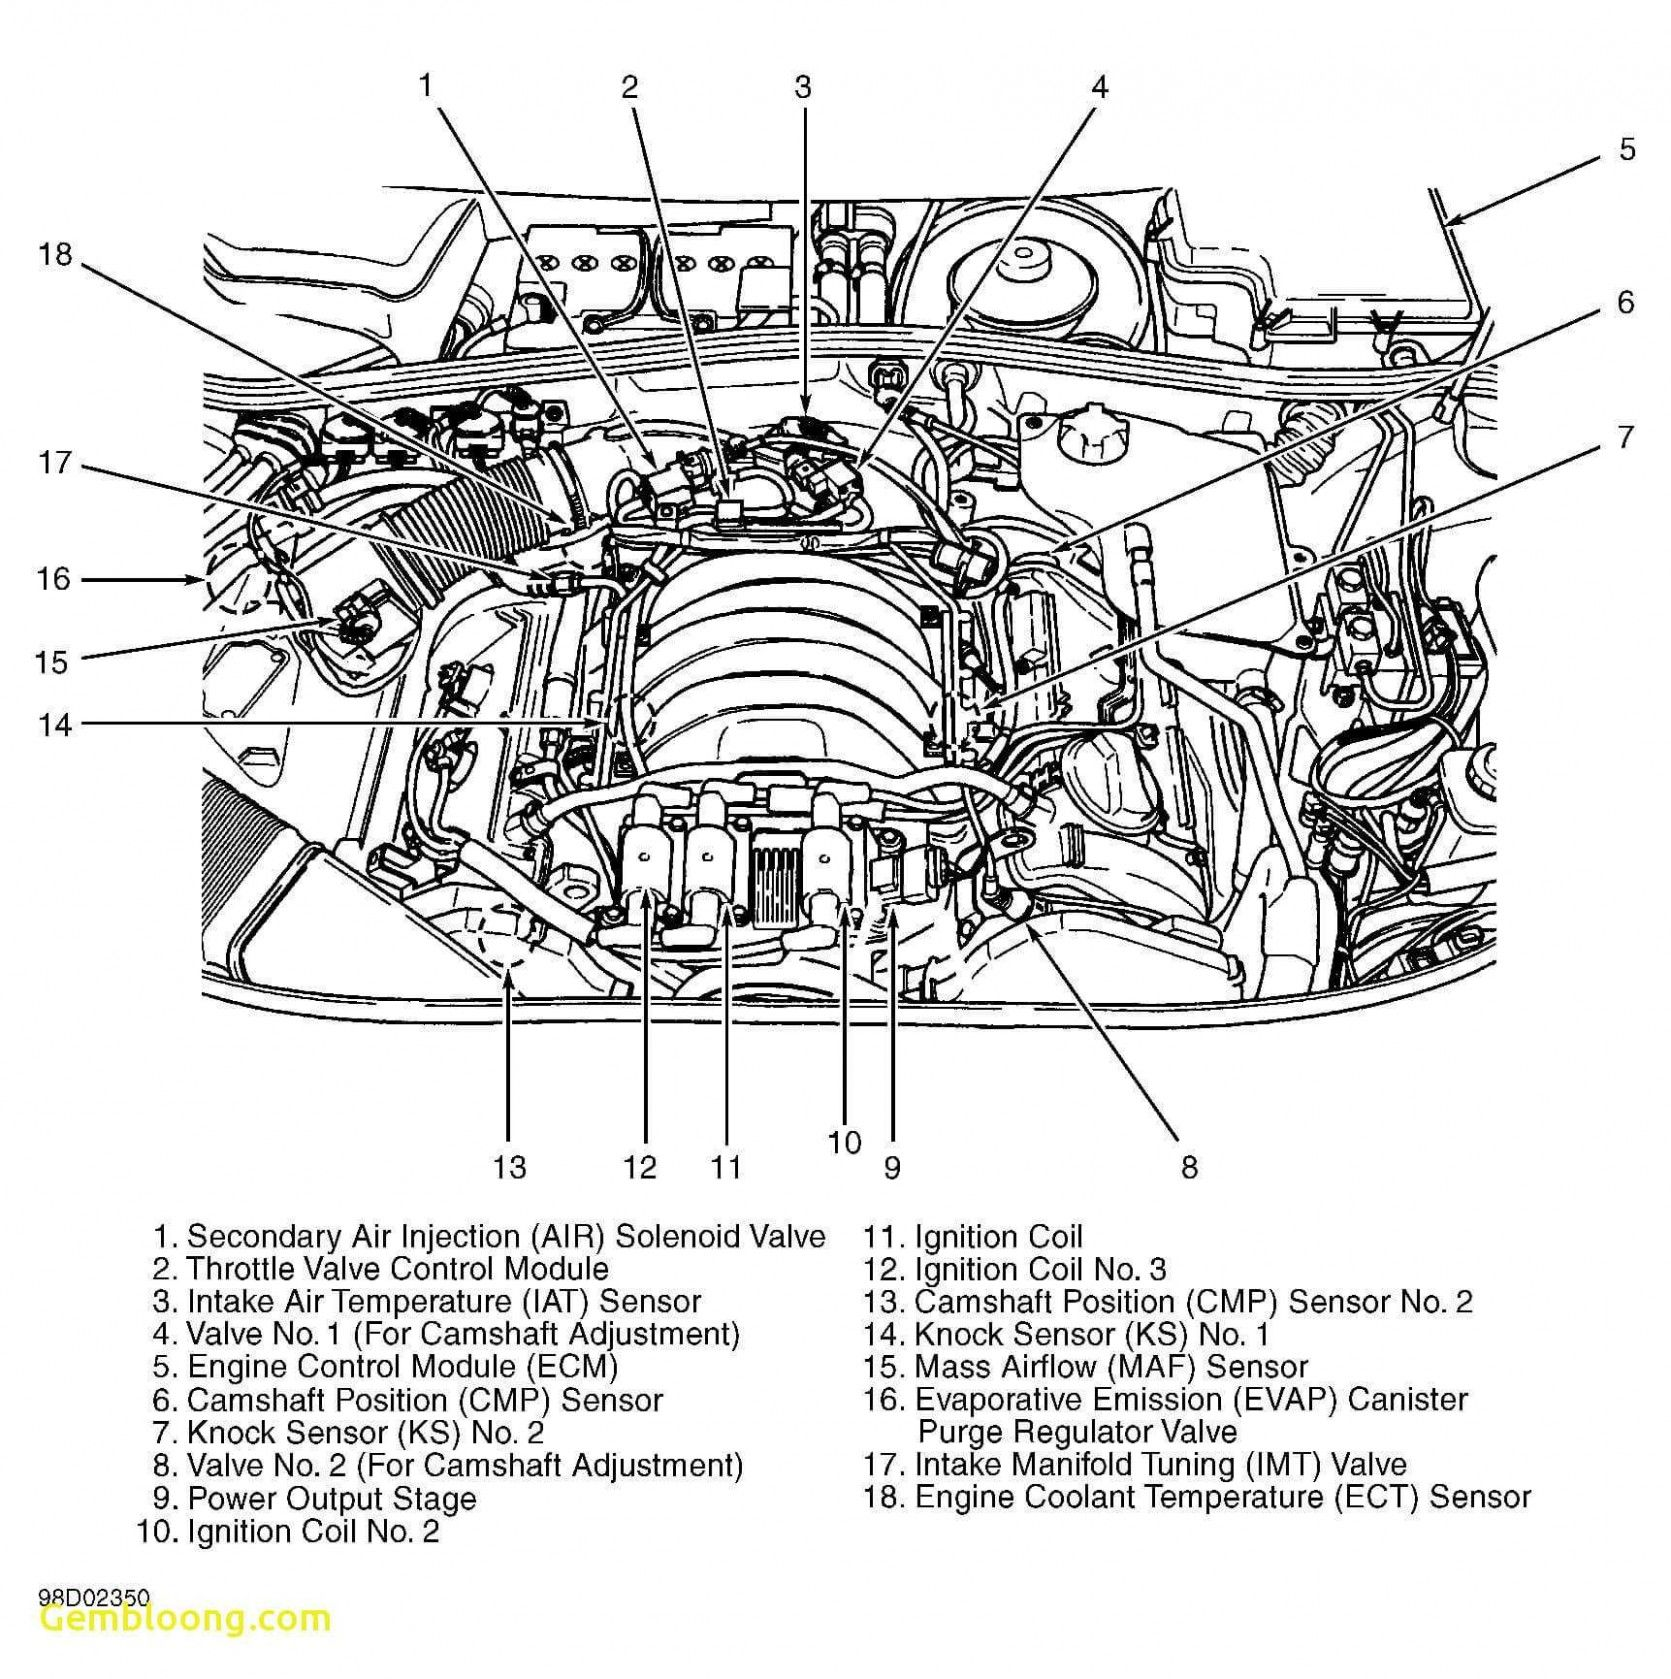 parts of an engine diagram pdf di 2020  pinterest